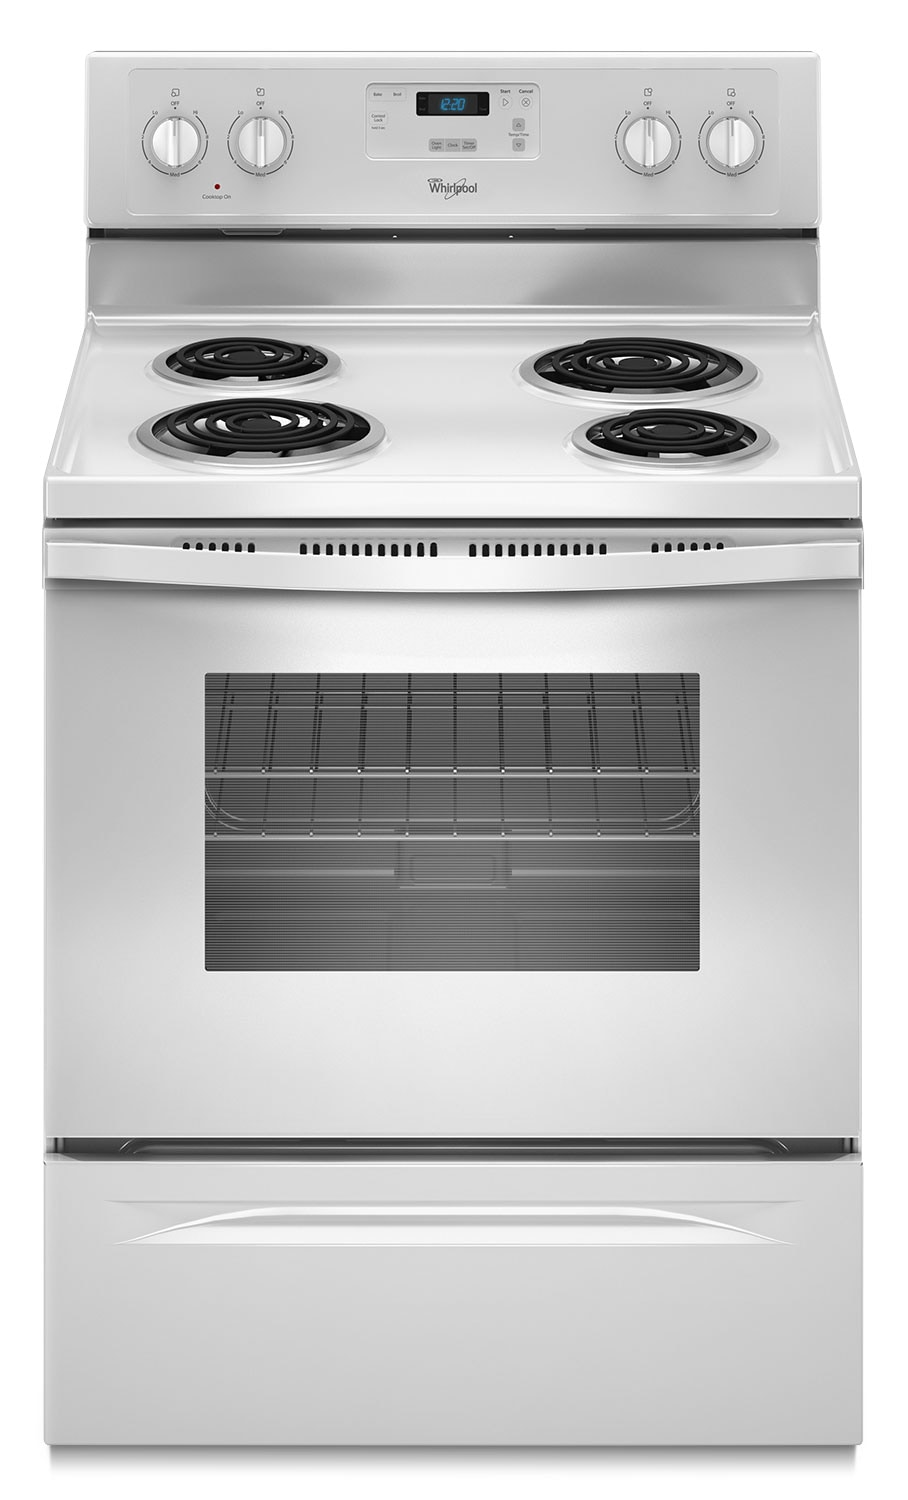 Whirlpool White Freestanding Electric Range (4.8 Cu. Ft.) - YWFC150M0EW